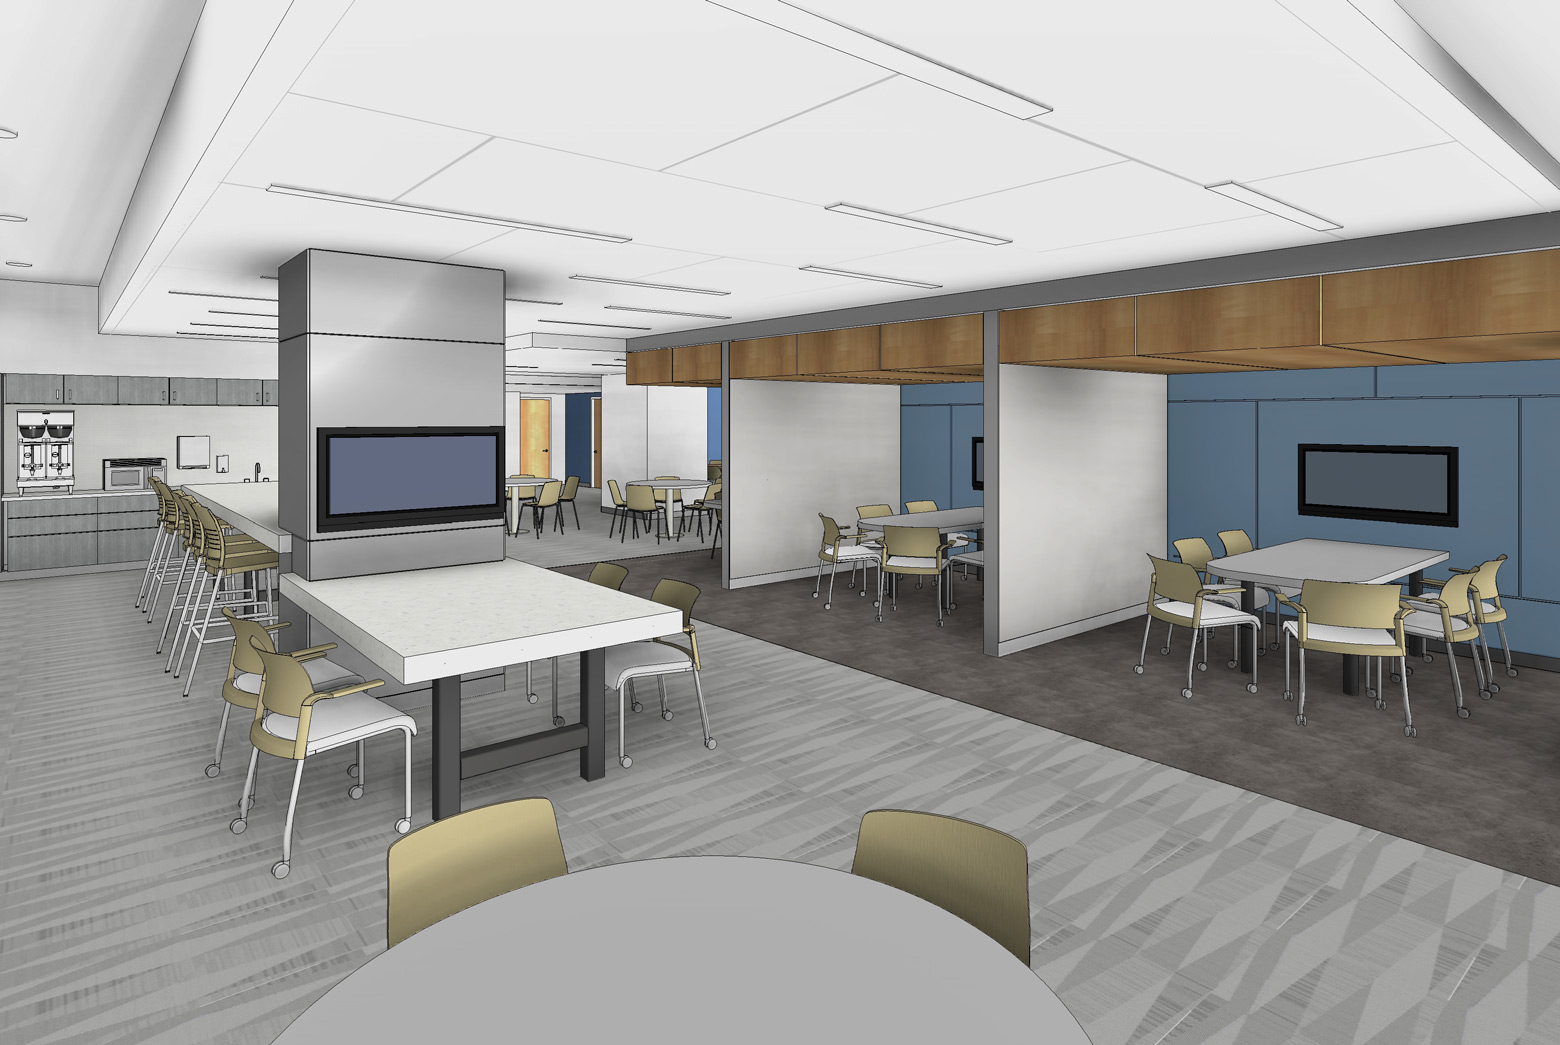 A 3D render showing part of the planned design space renovation